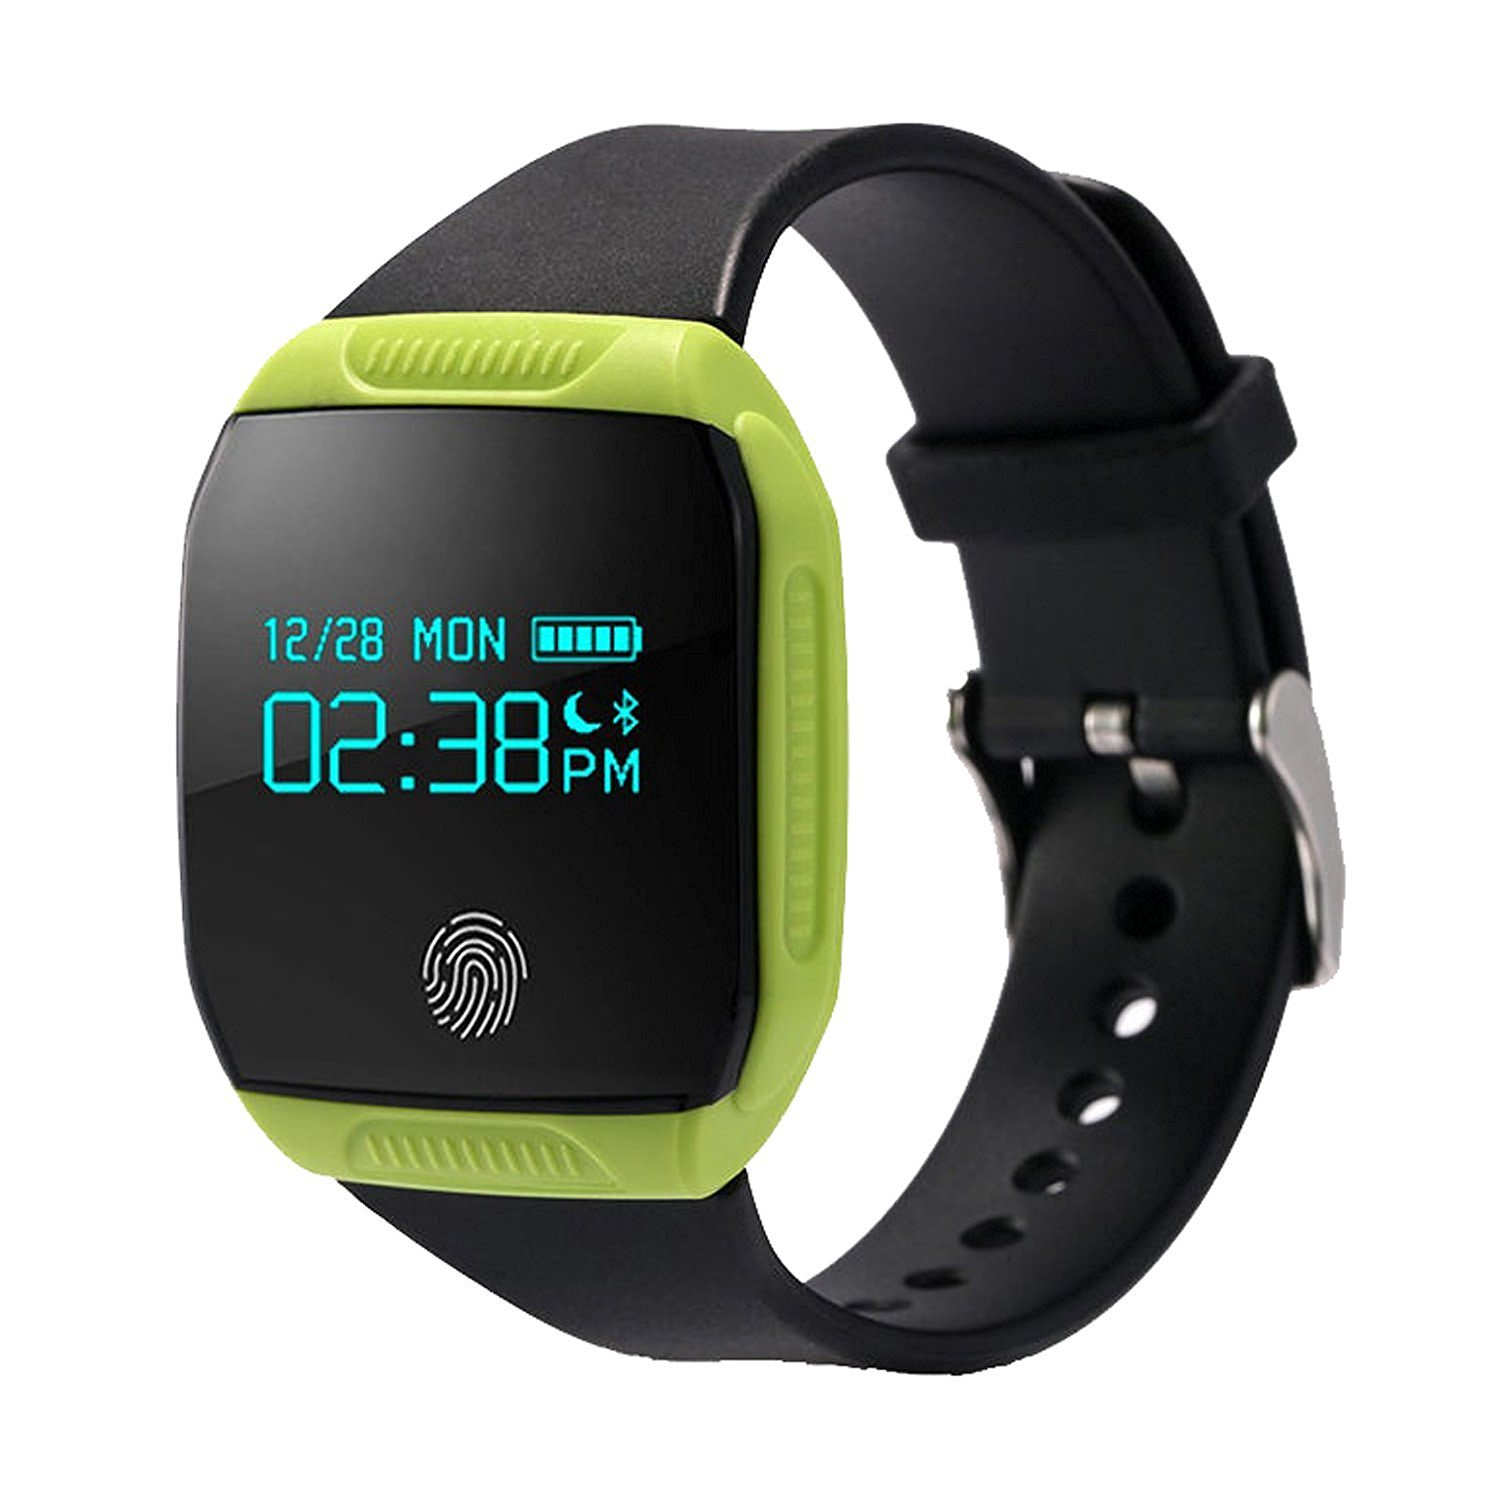 trackers fitness malaysia for tracking official in the mi price best xiaomi year watches band warranty